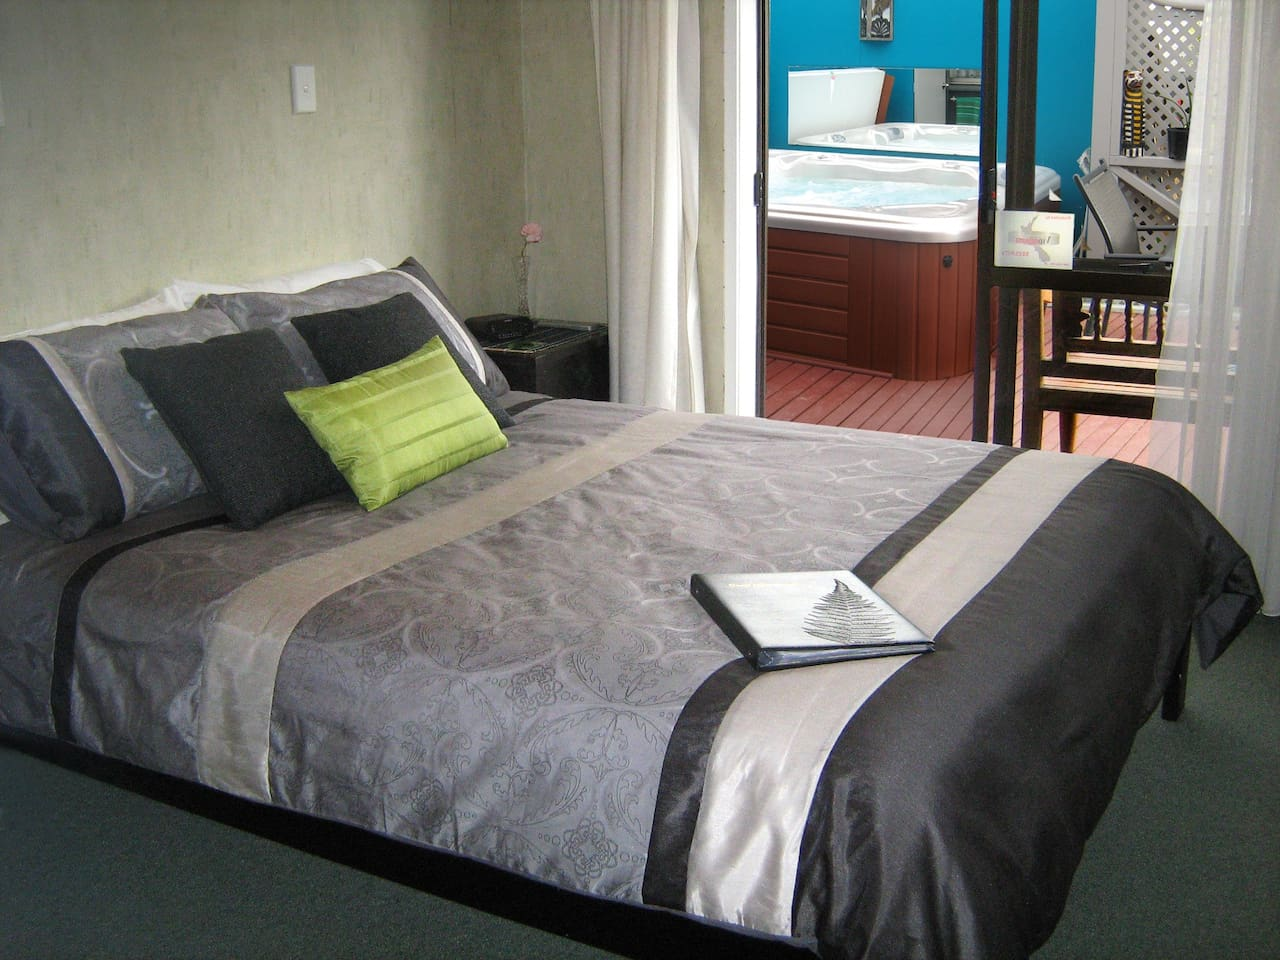 Rotorua City Homestay Room 1. Queen bed with ensuite bathroom and direct access to spa pool.